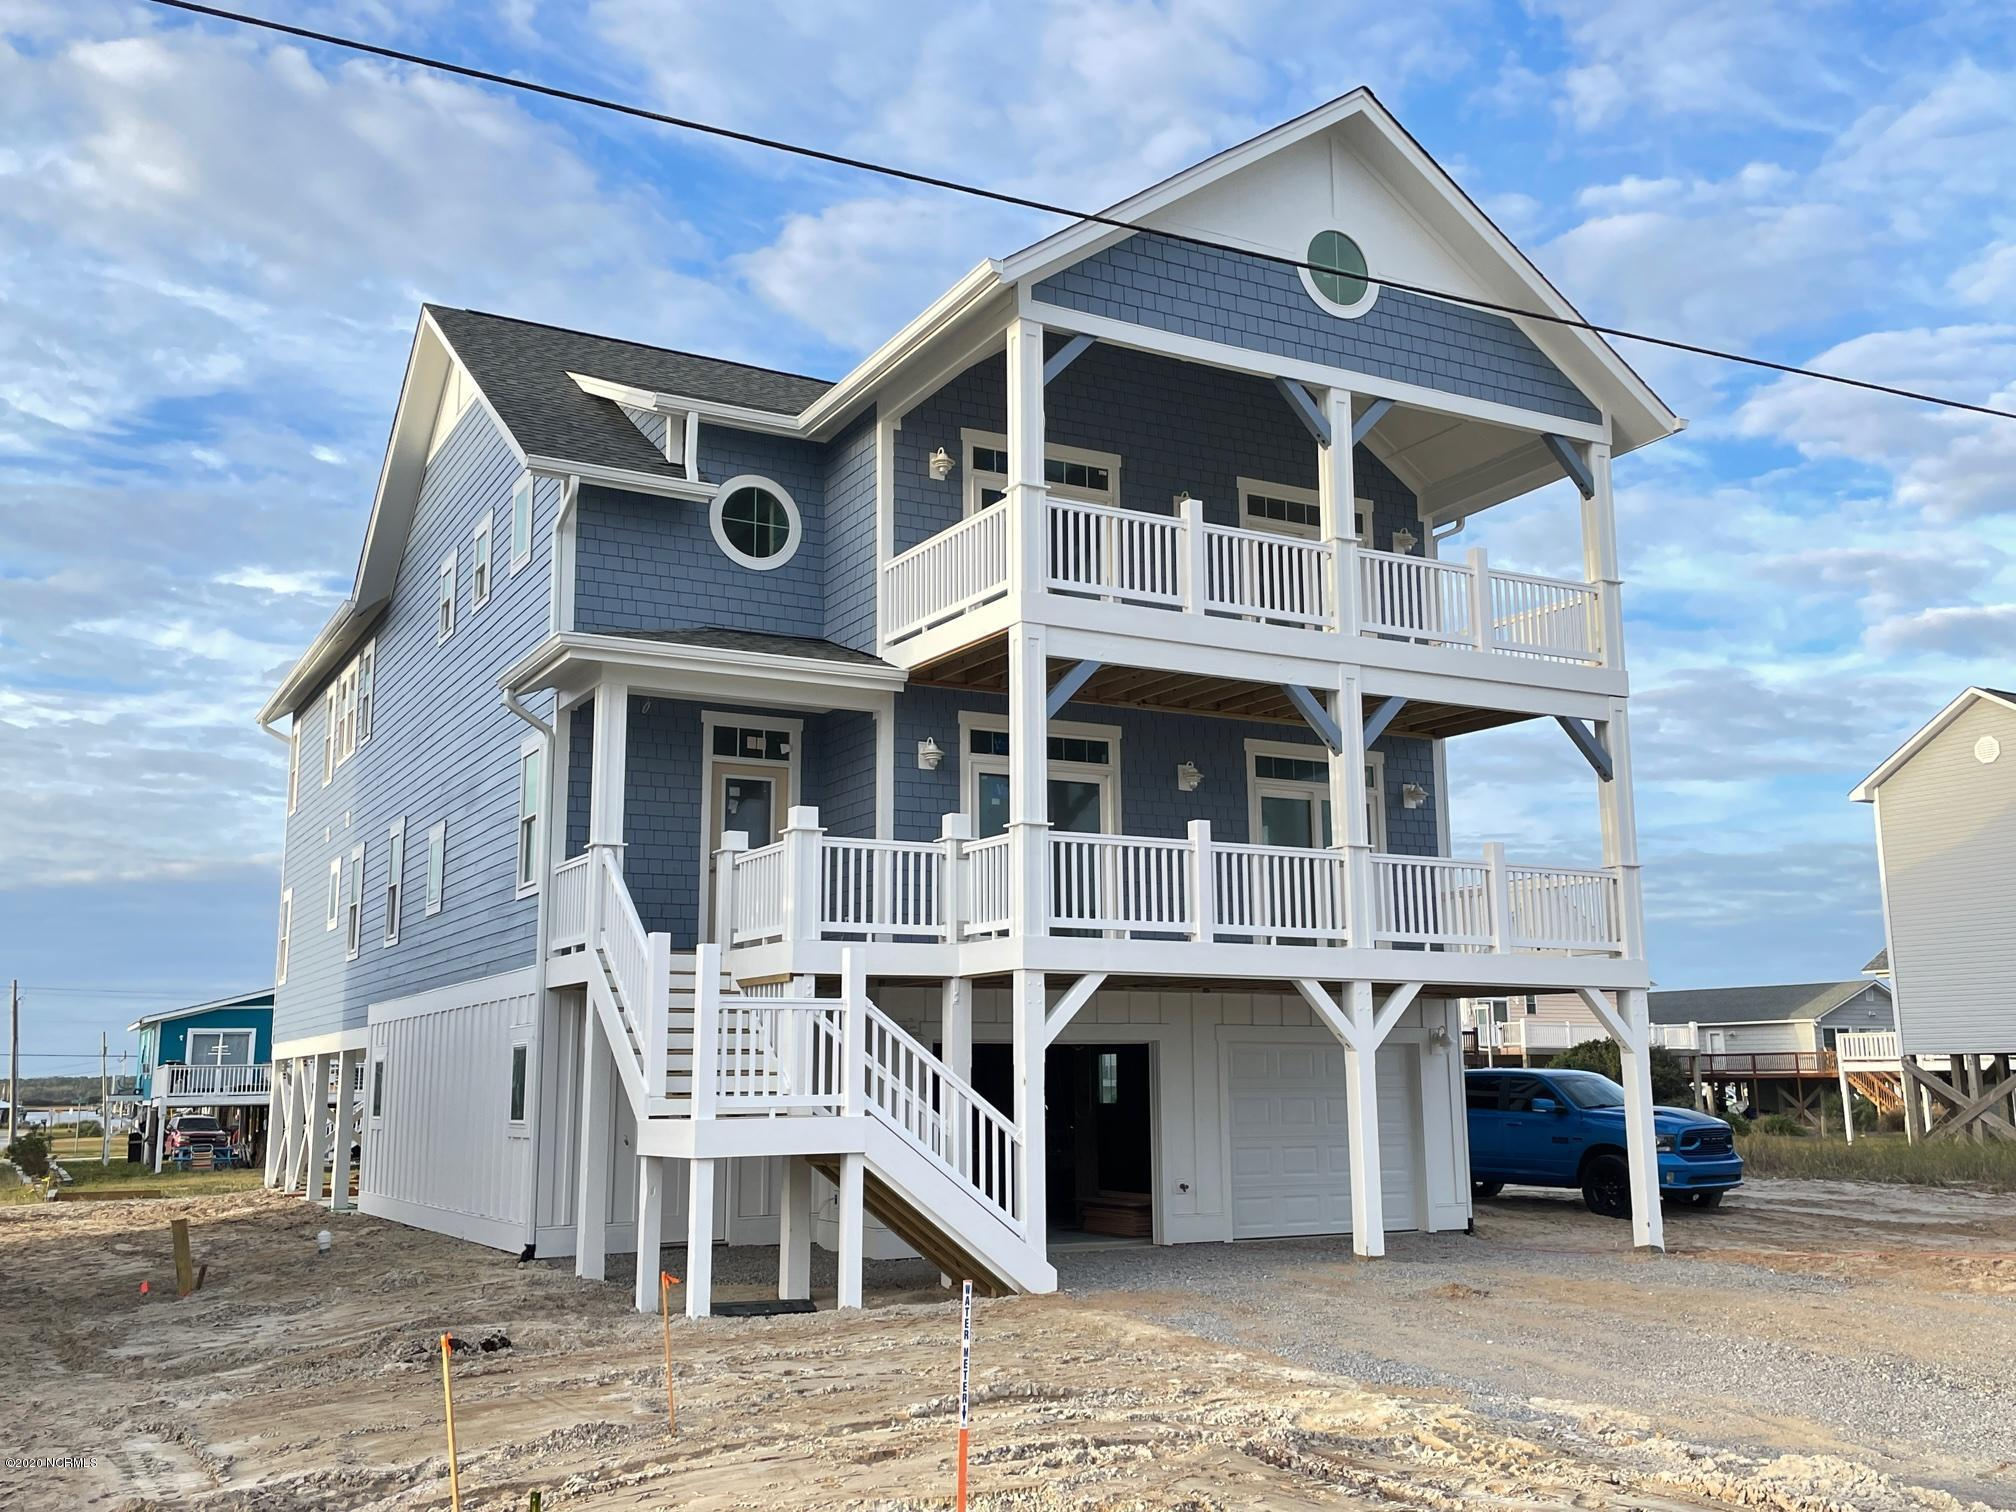 1801 Shore Drive, Surf City, North Carolina 28445, 5 Bedrooms Bedrooms, 10 Rooms Rooms,5 BathroomsBathrooms,Single family residence,For sale,Shore,100229245